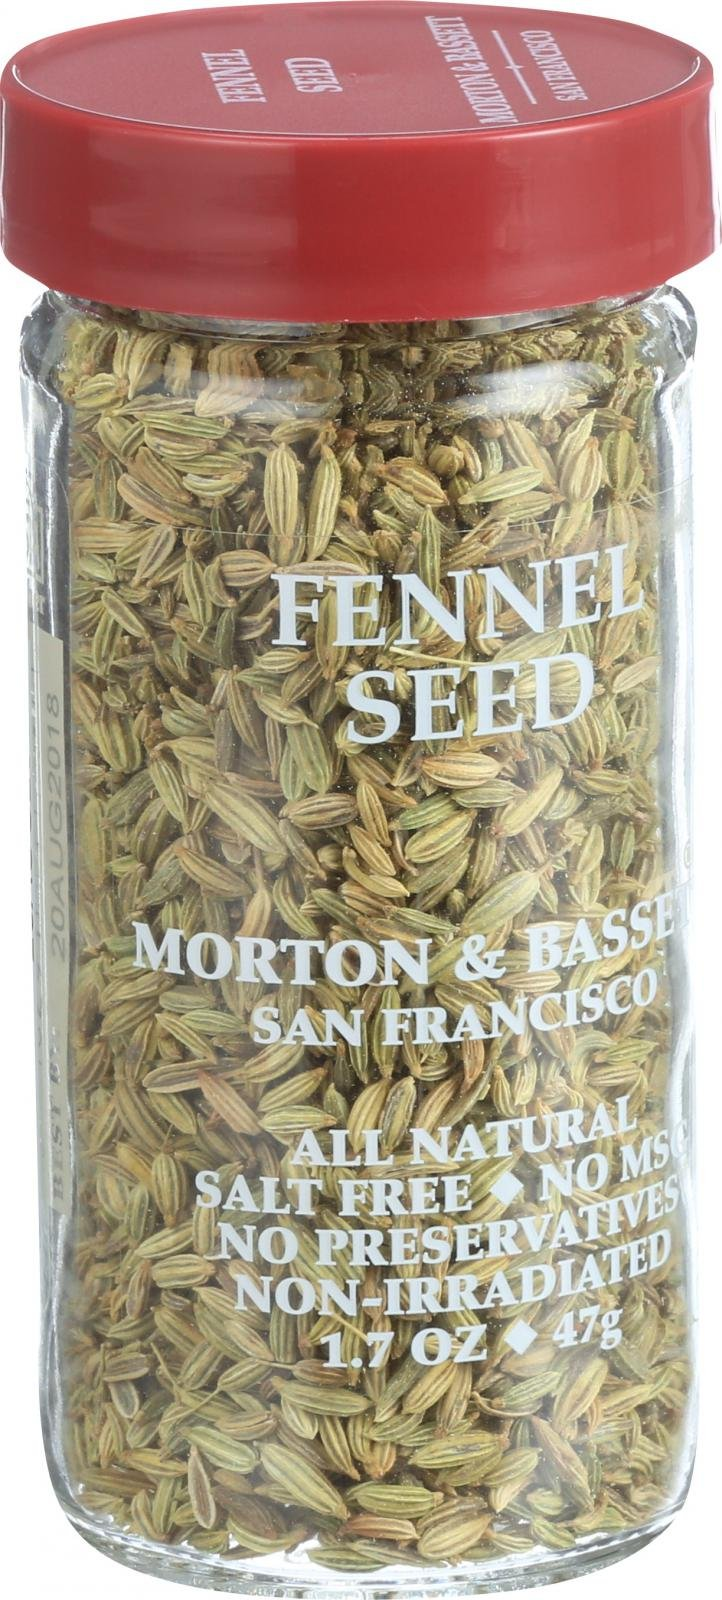 Morton and Bassett Seasoning - Fennel Seed - 1.9 oz - Case of 3 - All Natural - Salt Free